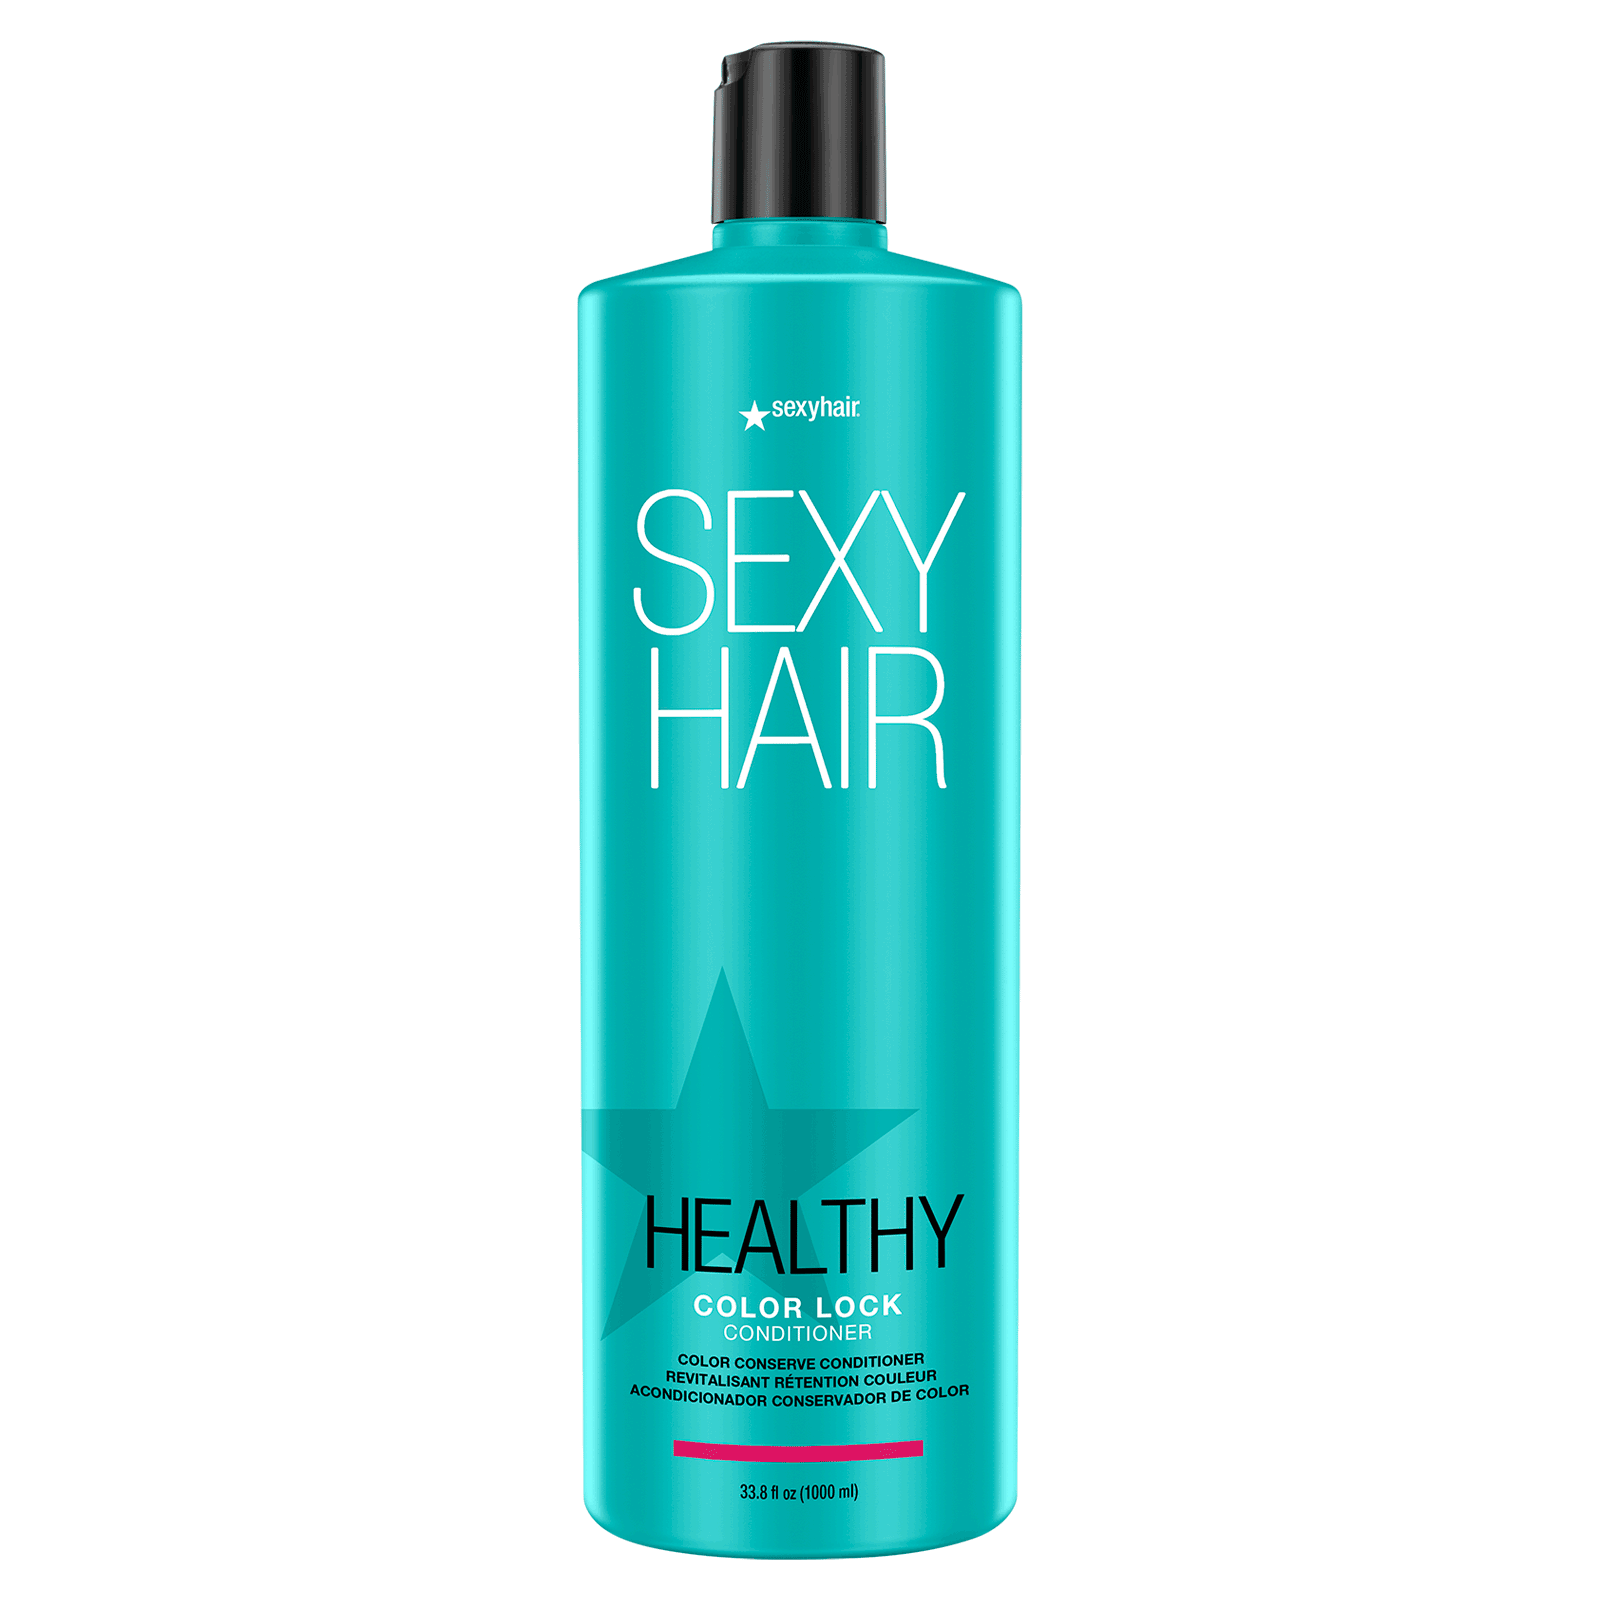 Vibrant Color Lock Conditioner